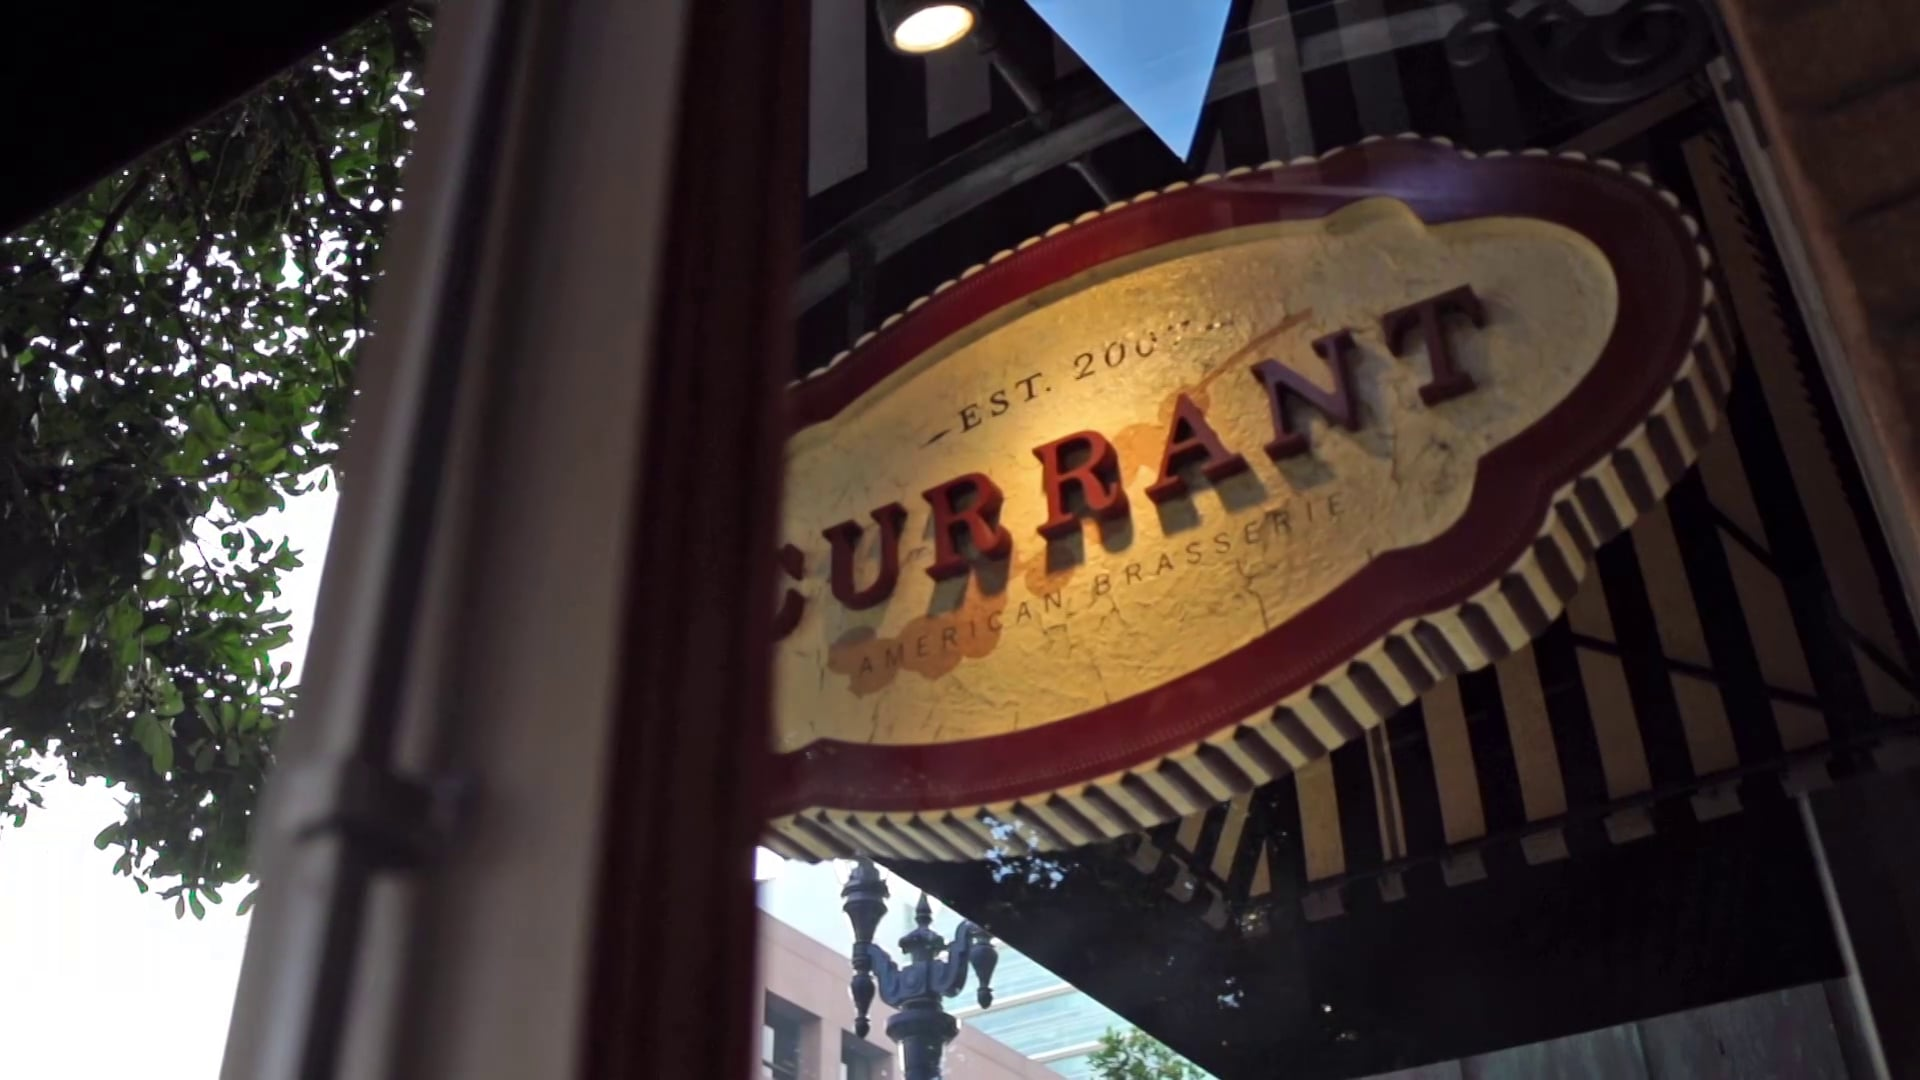 Currant American Brasserie Restaurant  Commercial